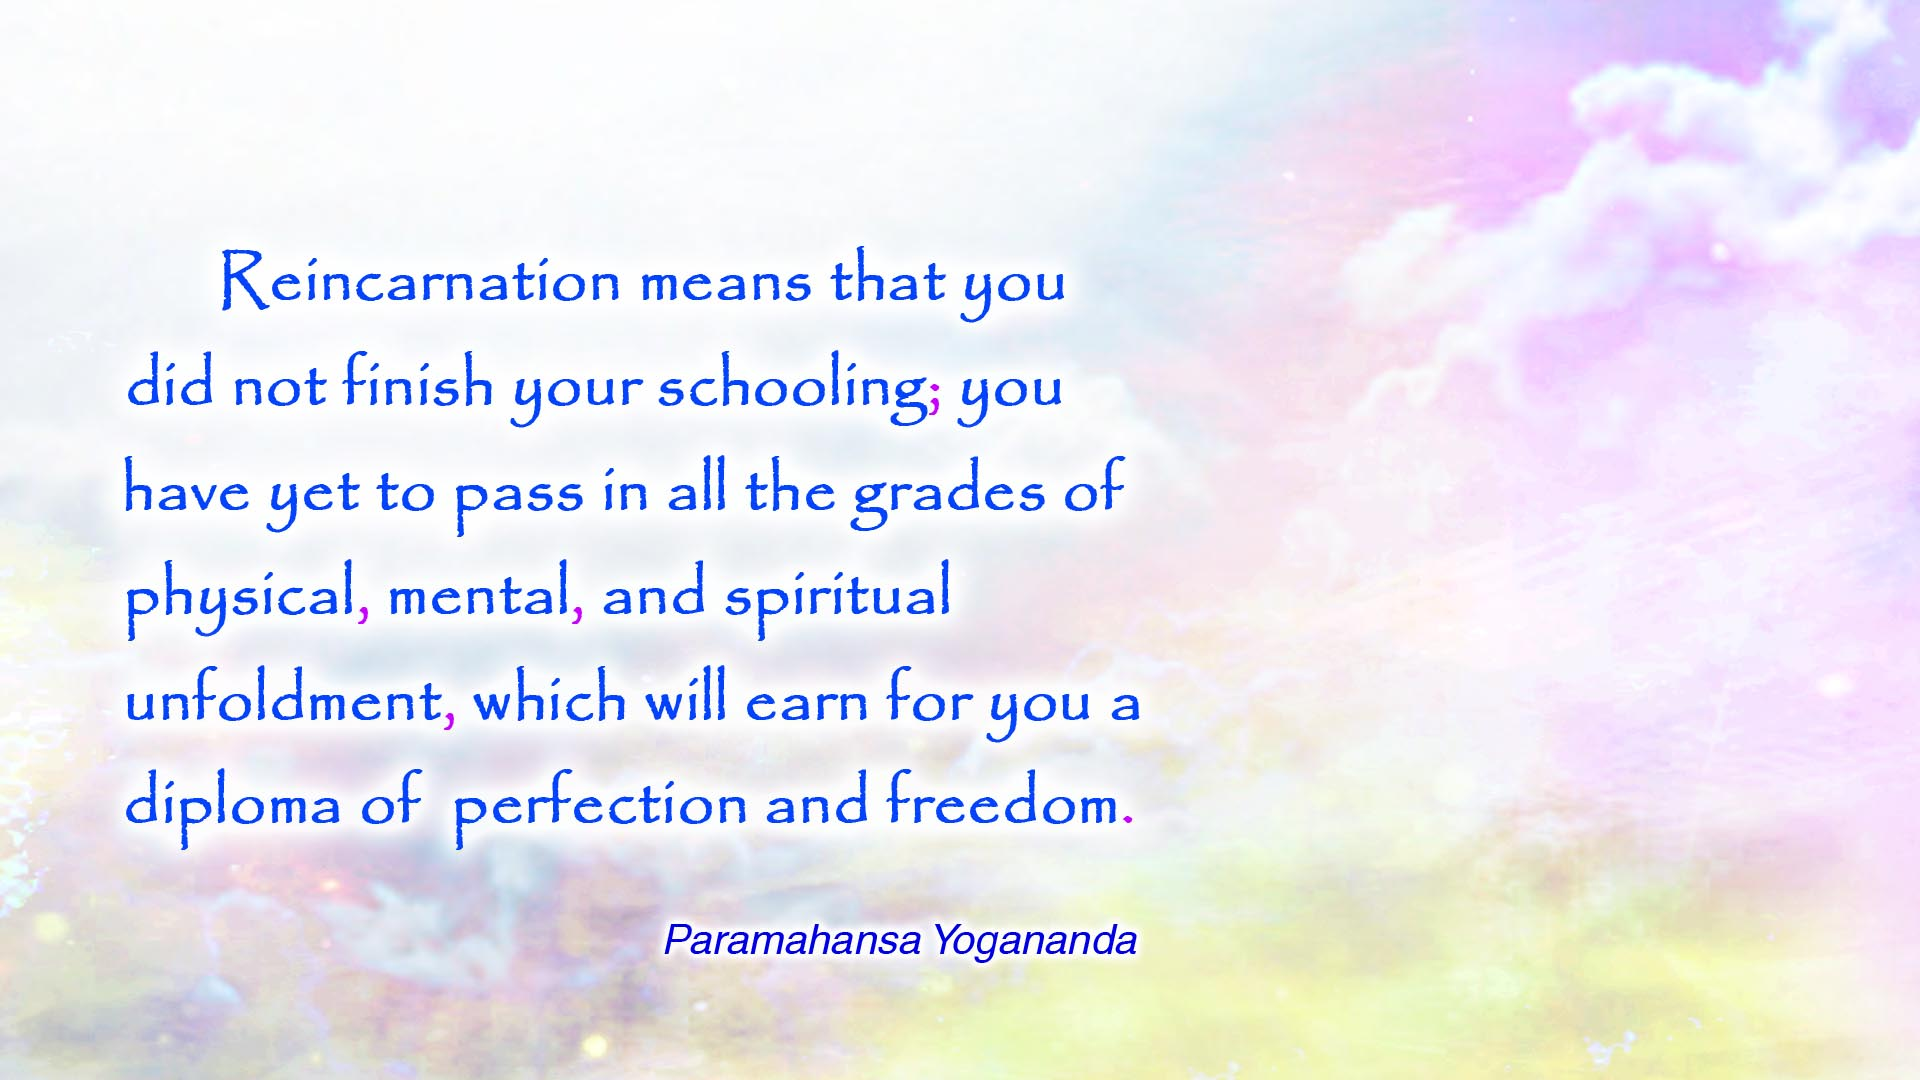 Yogananda diploma of perfection